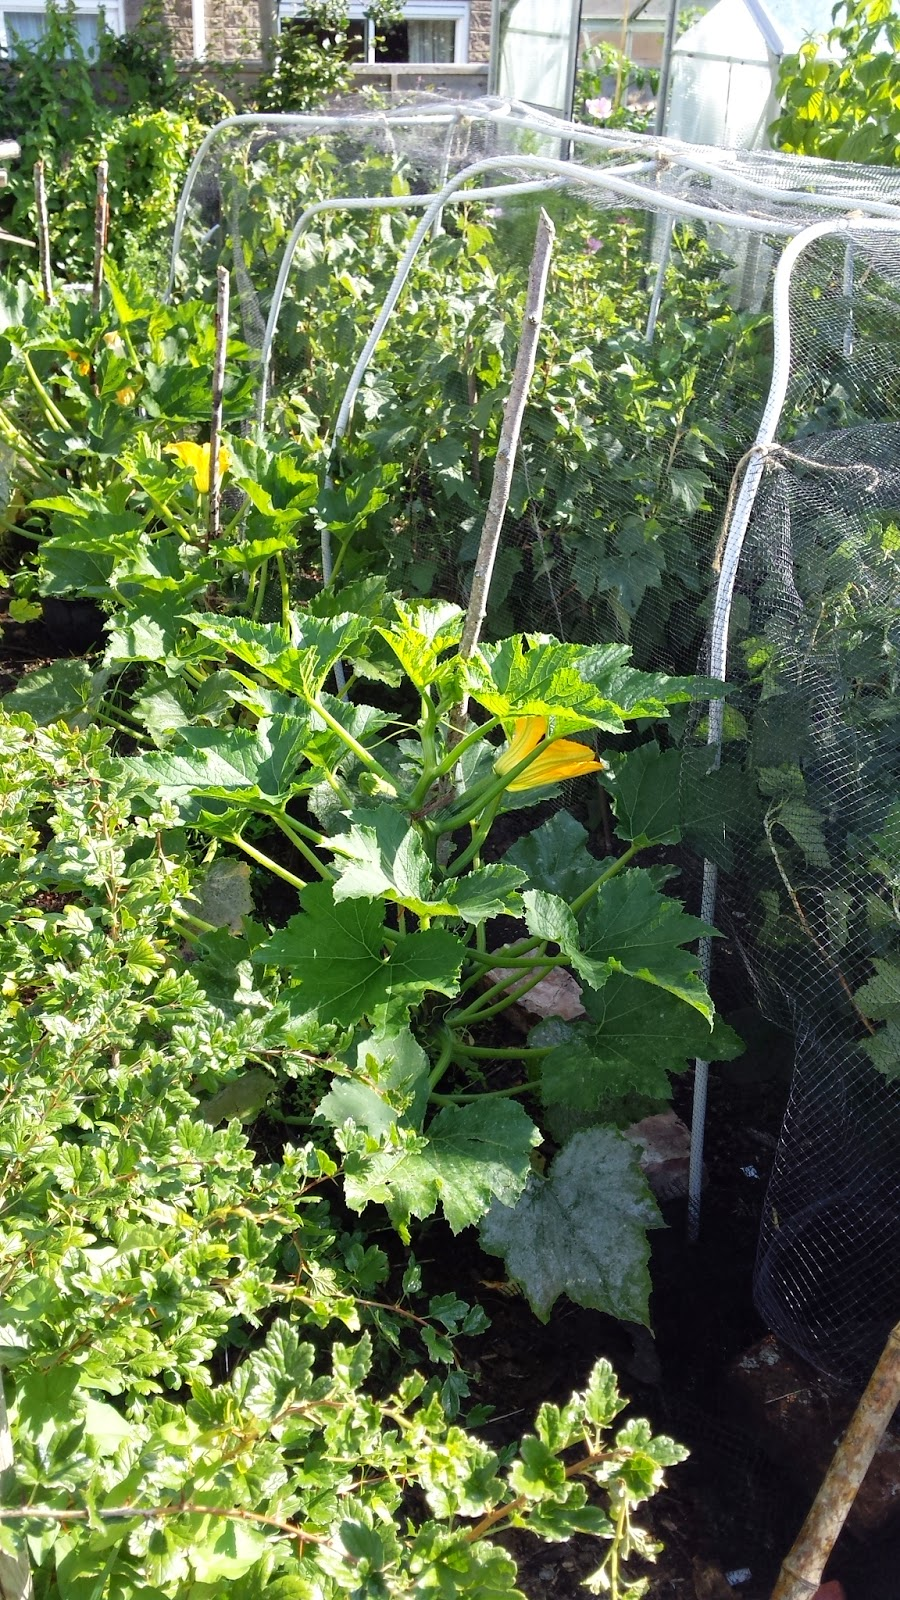 Courgettes and fruit